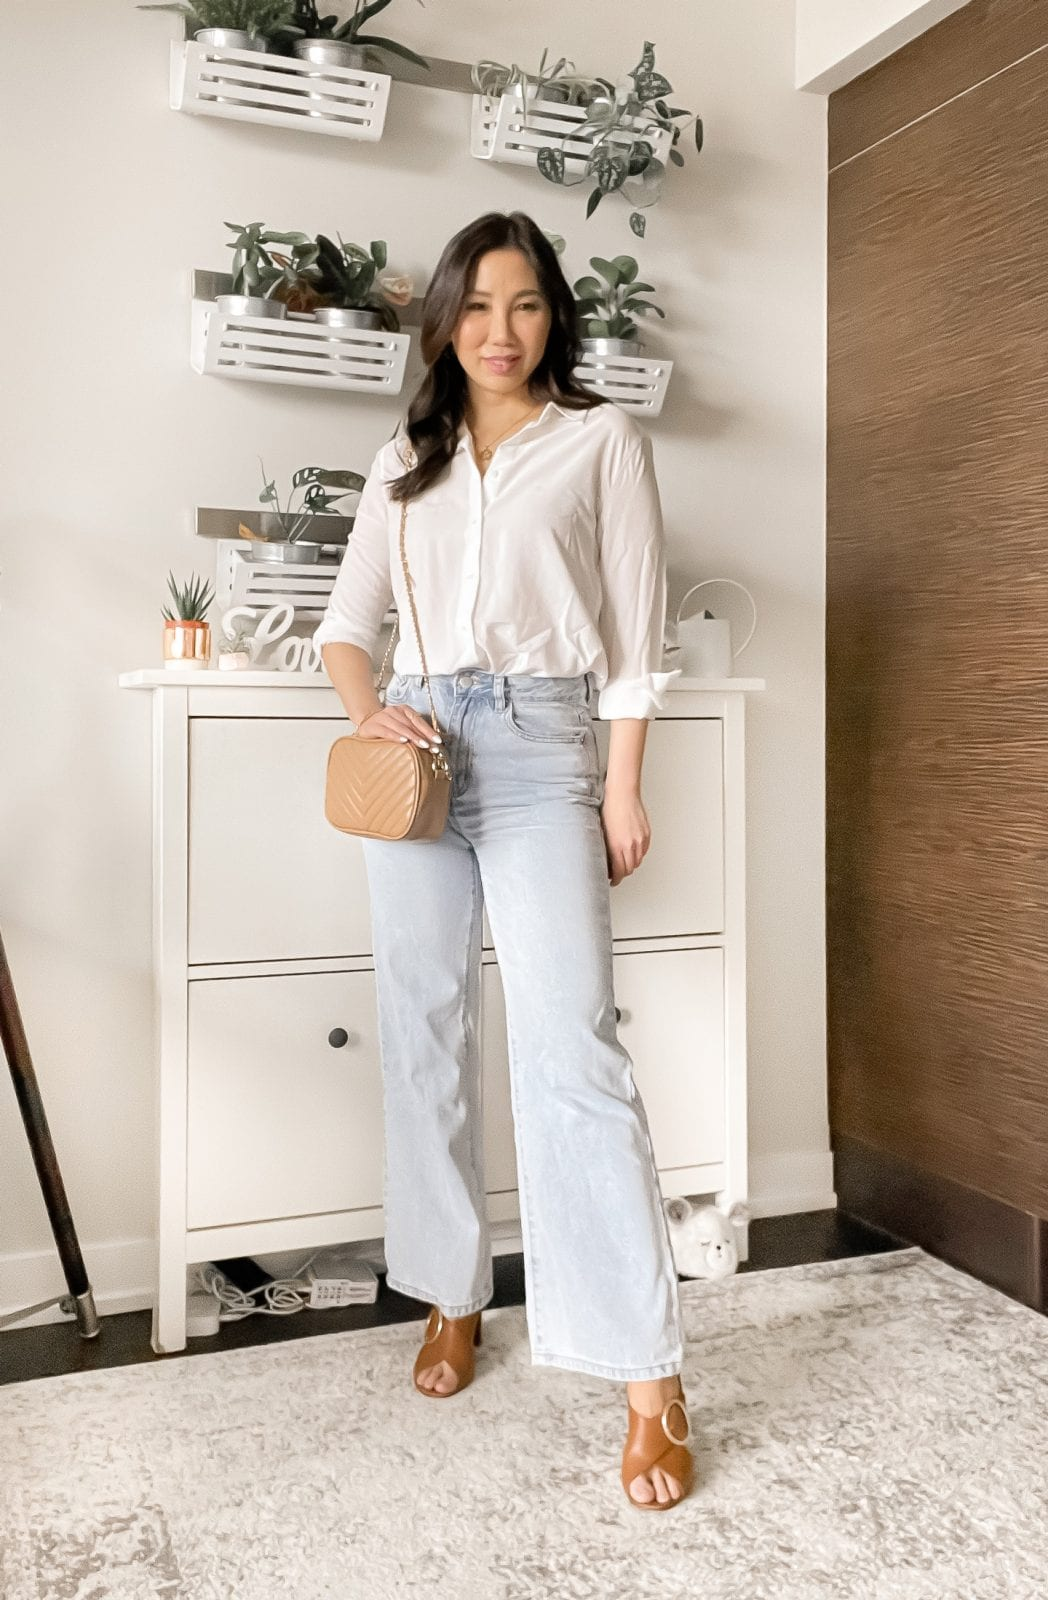 Chic wide leg jeans look with button down shirt styled by Eileen Lazazzera of yesmissy.com